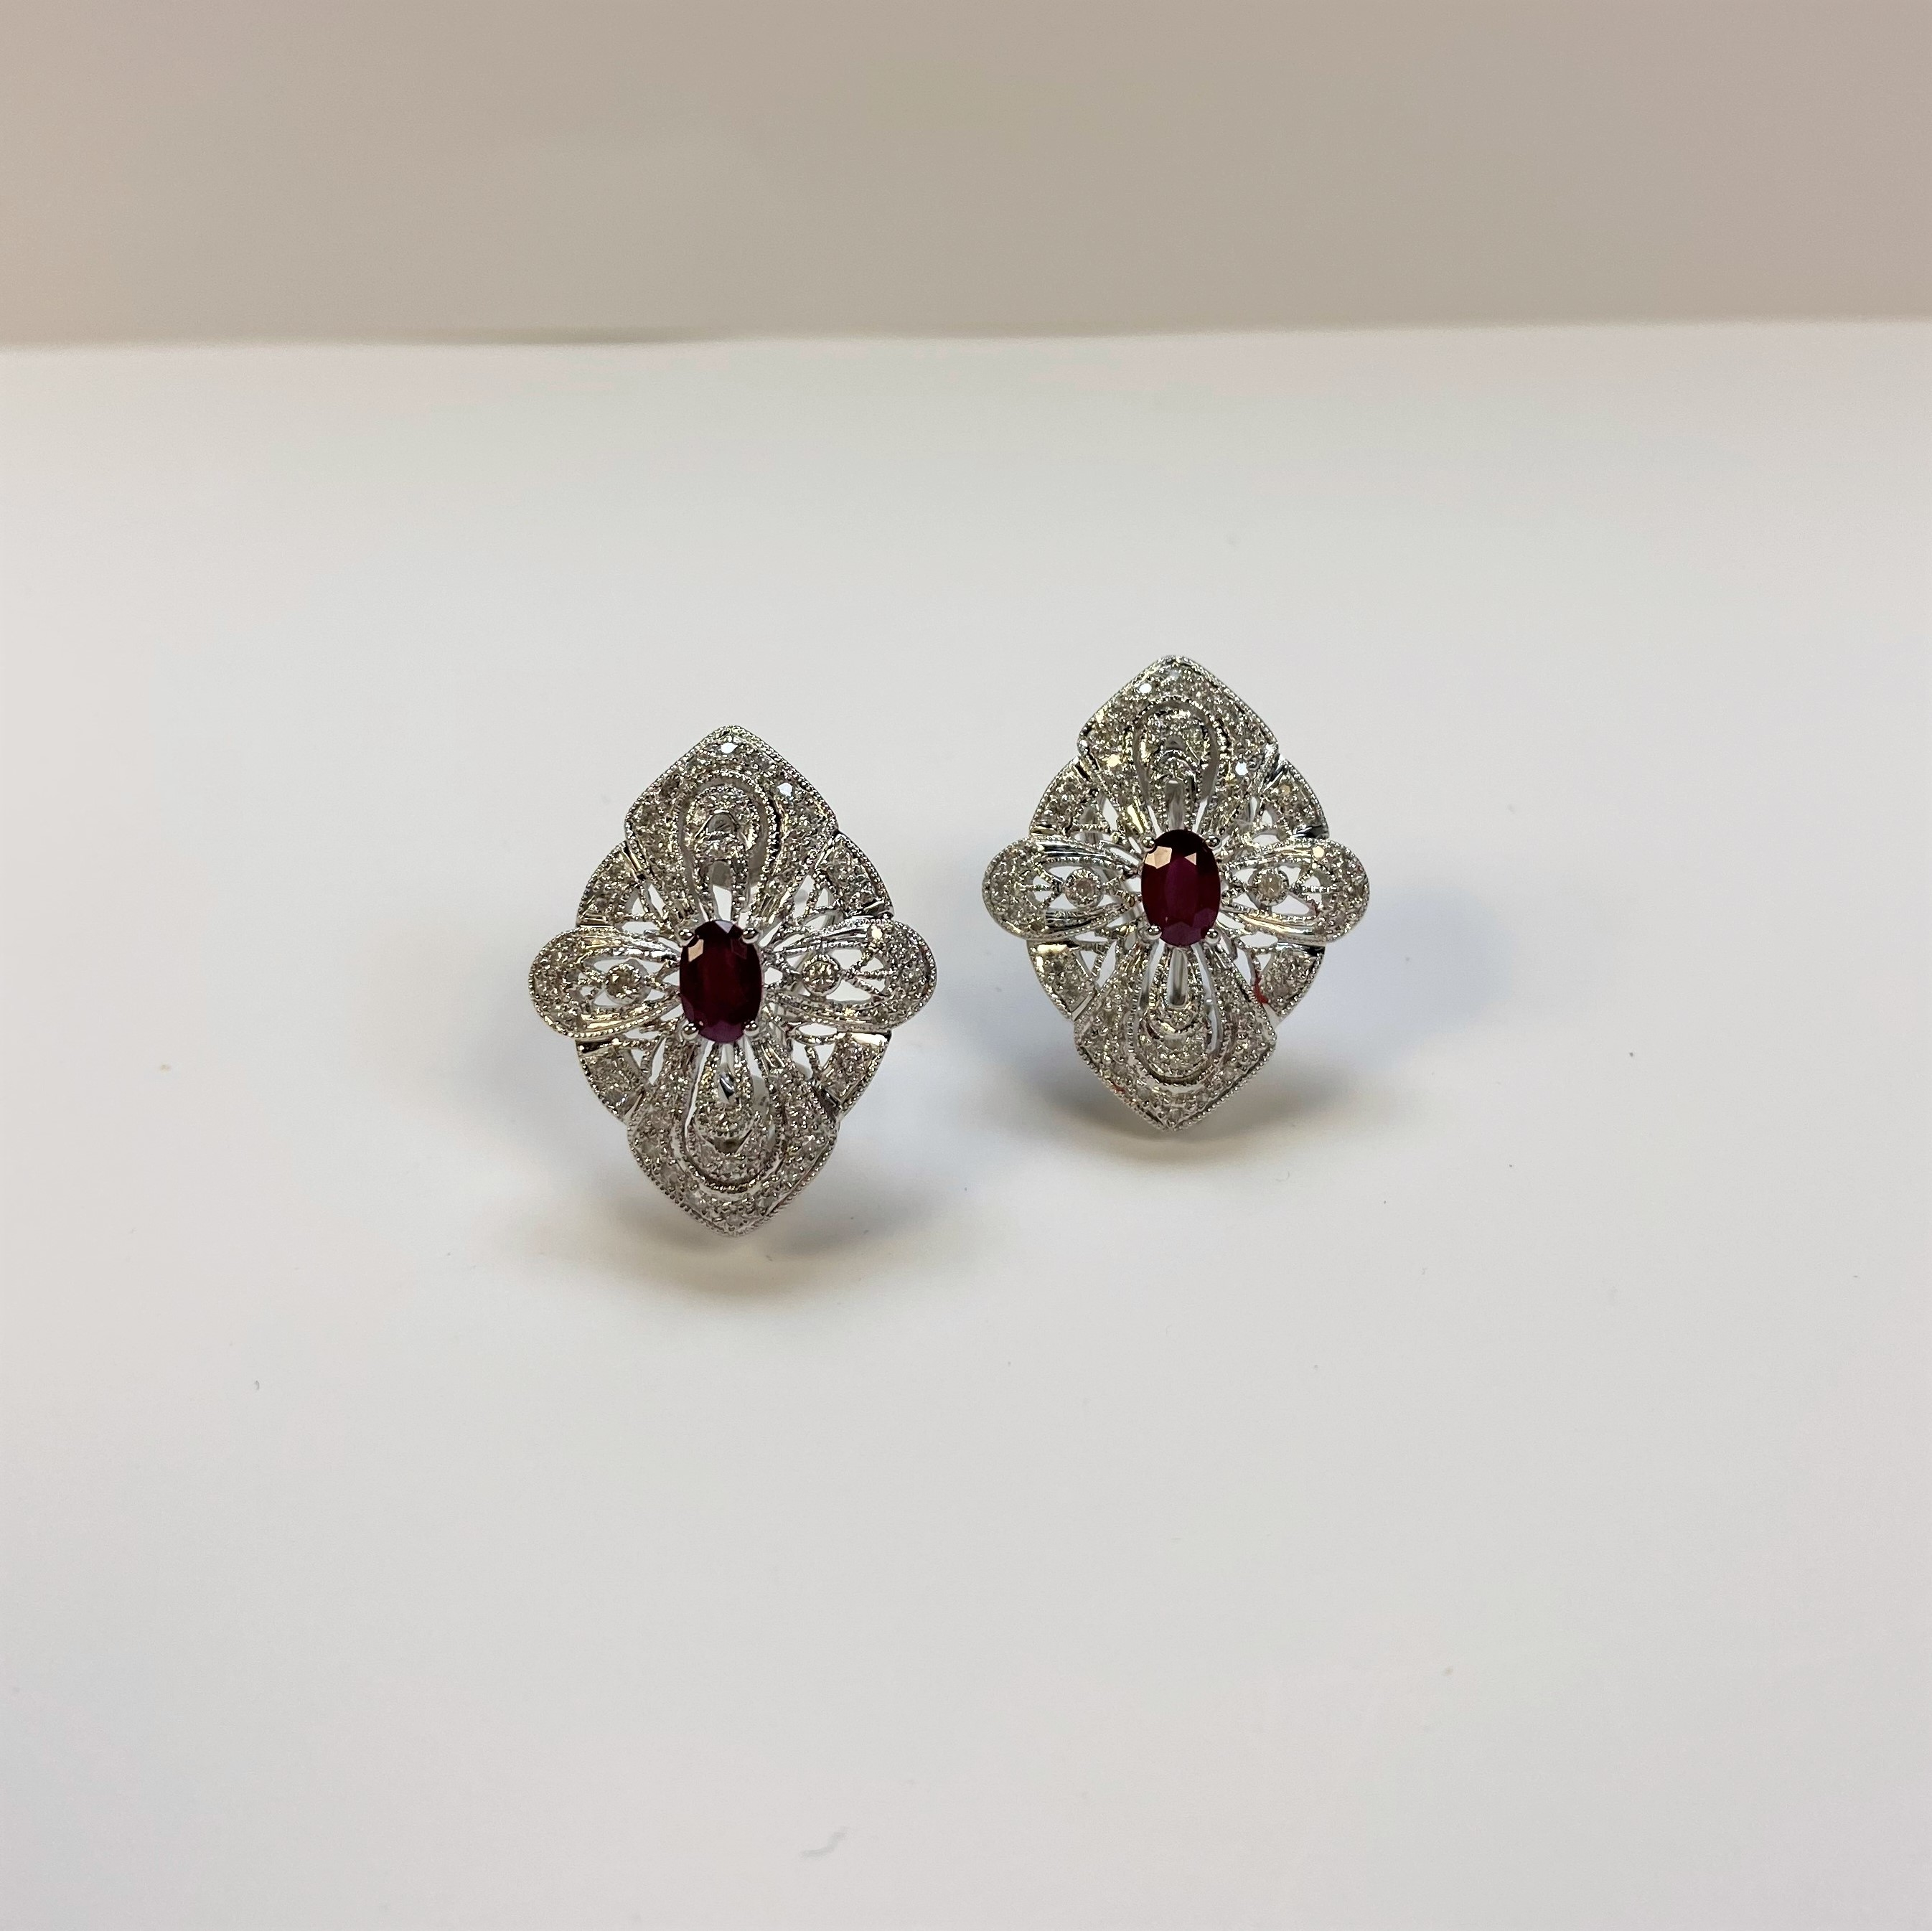 0.75 Carats Total Weight Ruby Diamond Earrings